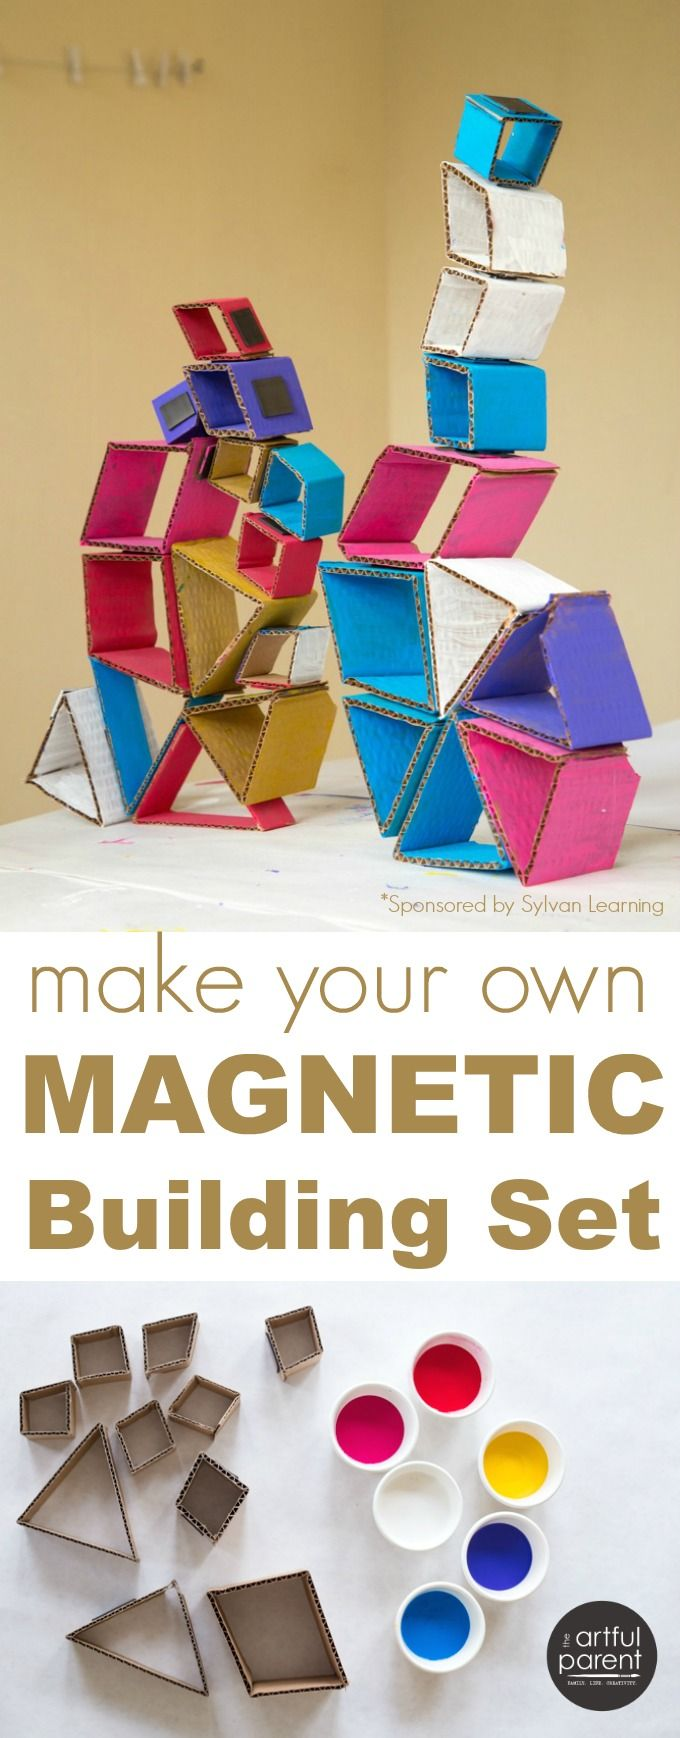 How to make your own magnetic building set for kids using cardboard. These magnetic shapes are easy to make, fun to play with, and cheap!